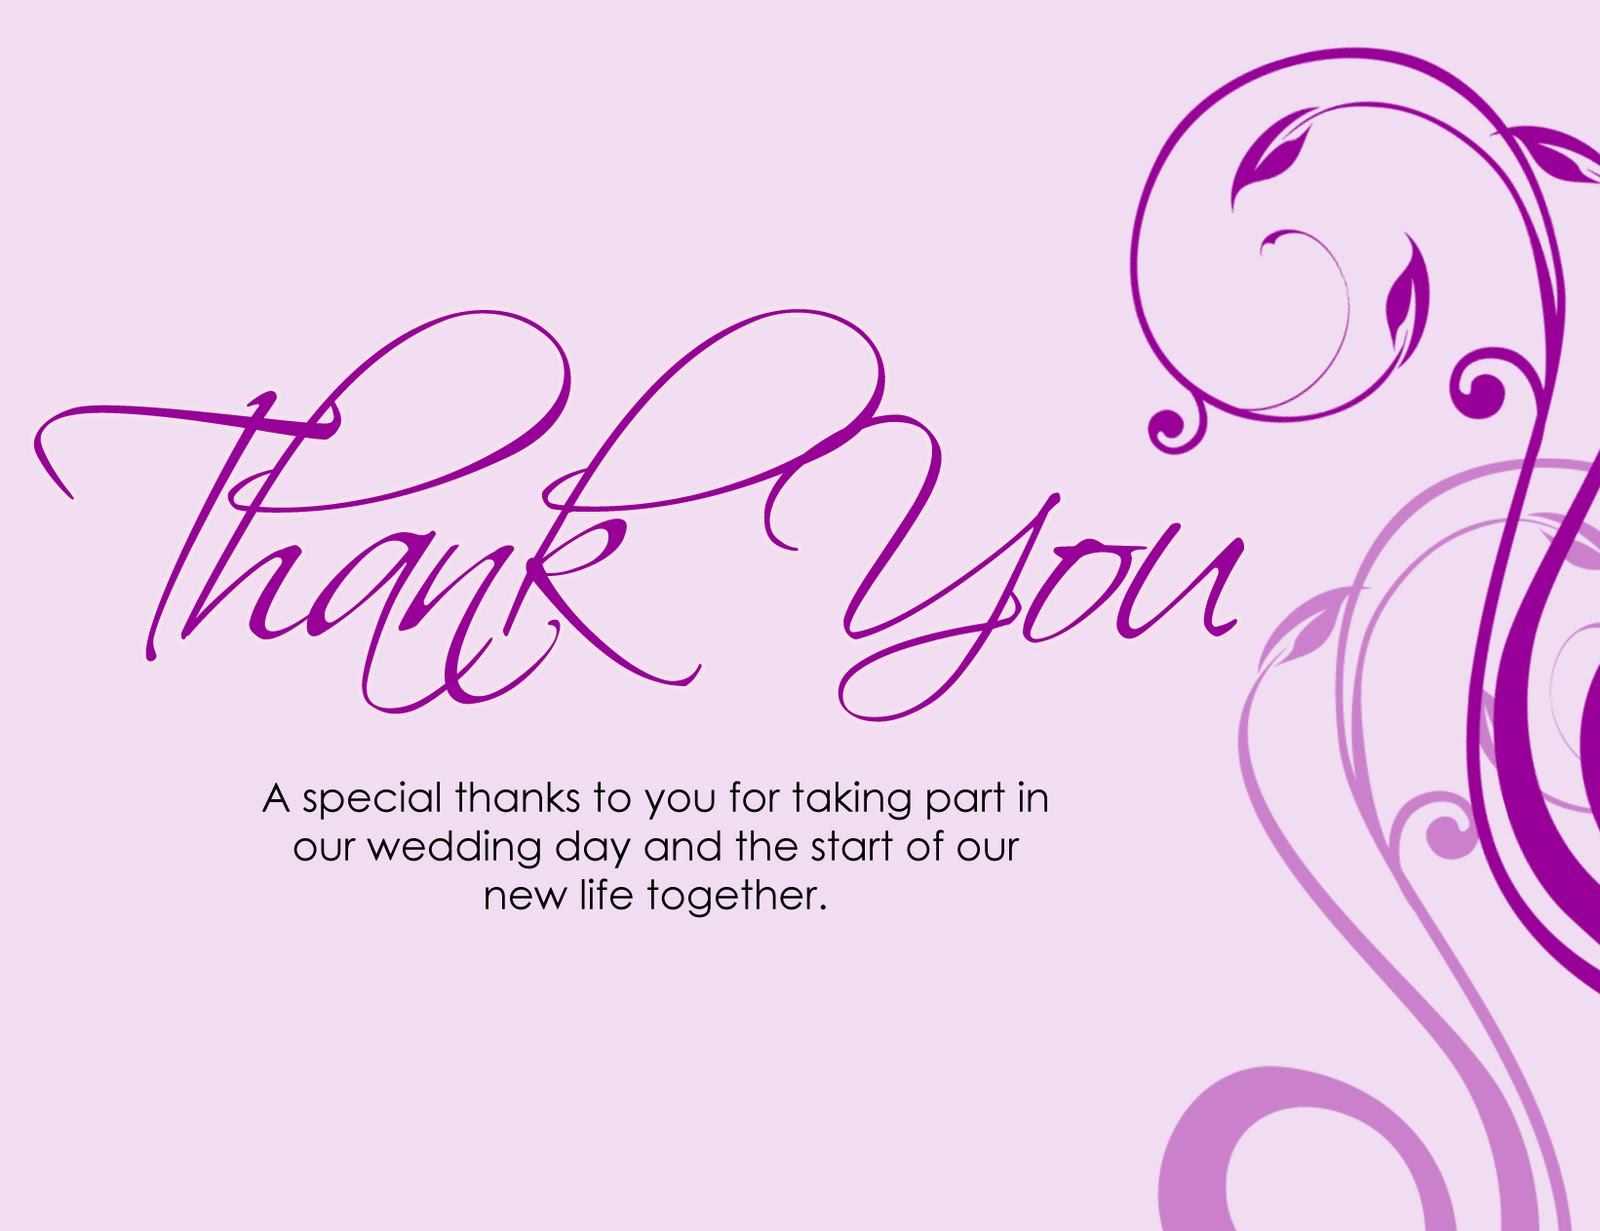 Wedding Gift Not Attending: Wedding Thank You Card Wording Should Maintain Etiquette